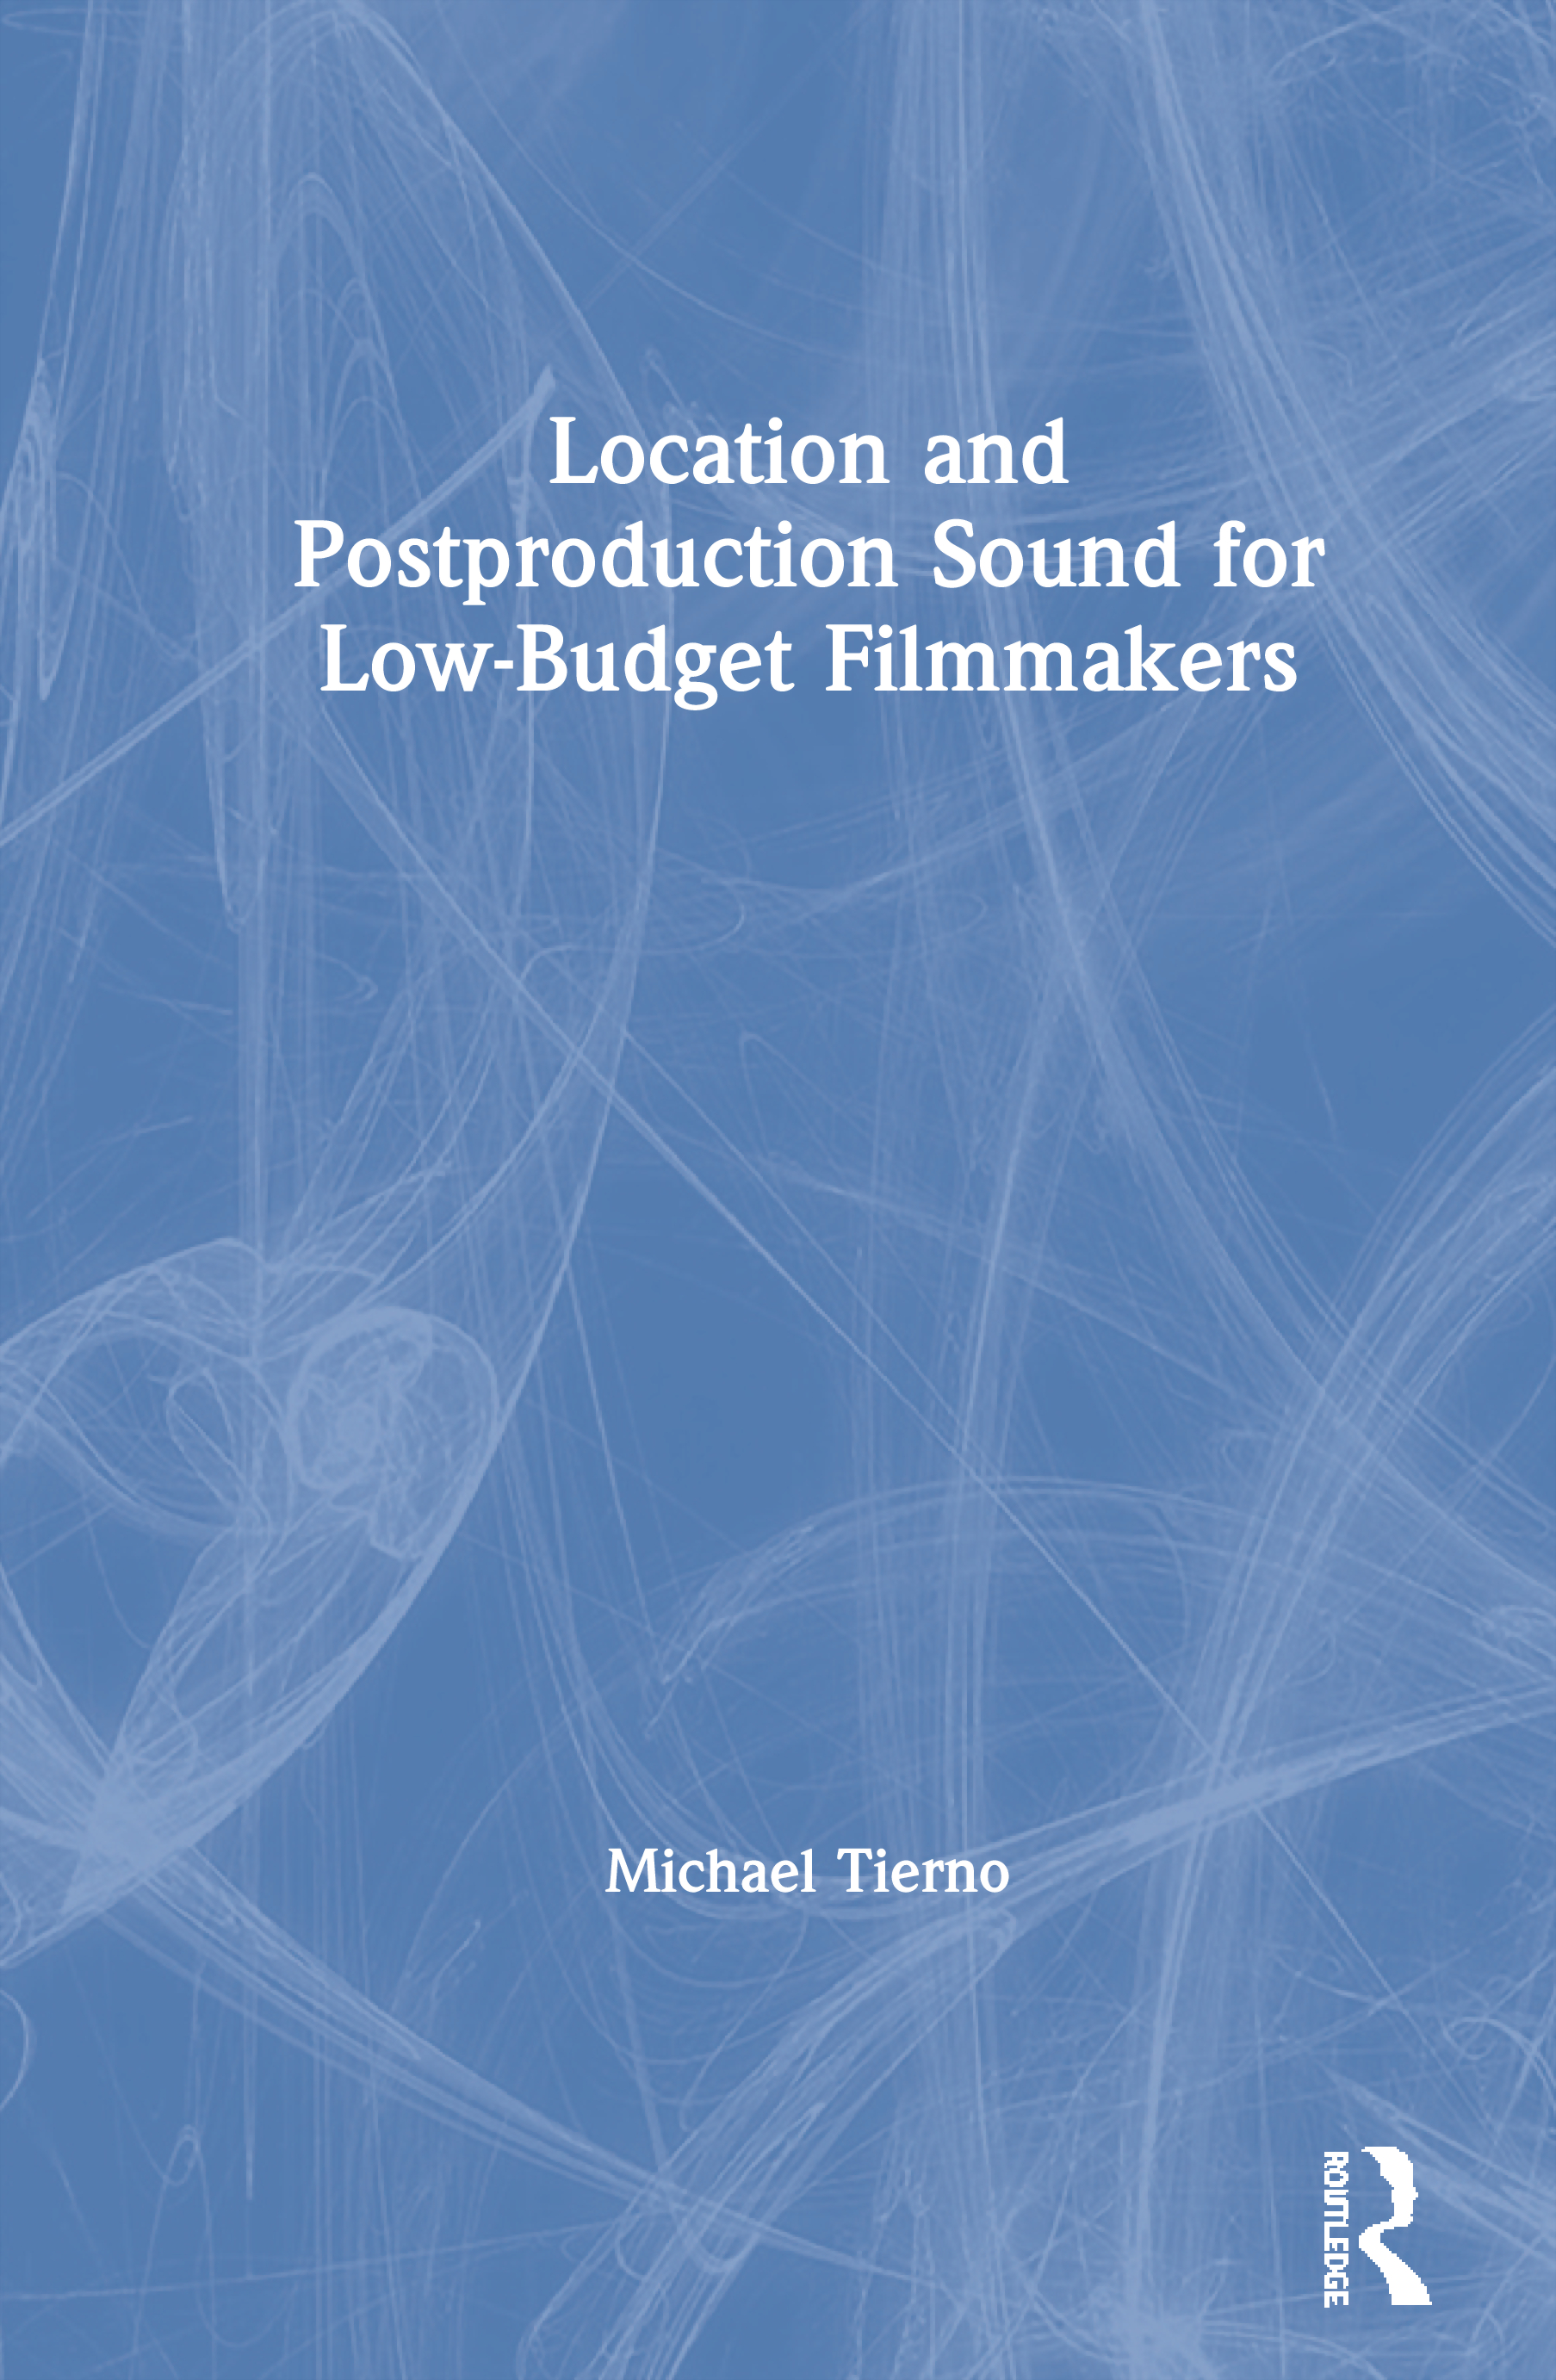 Location and Postproduction Sound for Low-Budget Filmmakers book cover